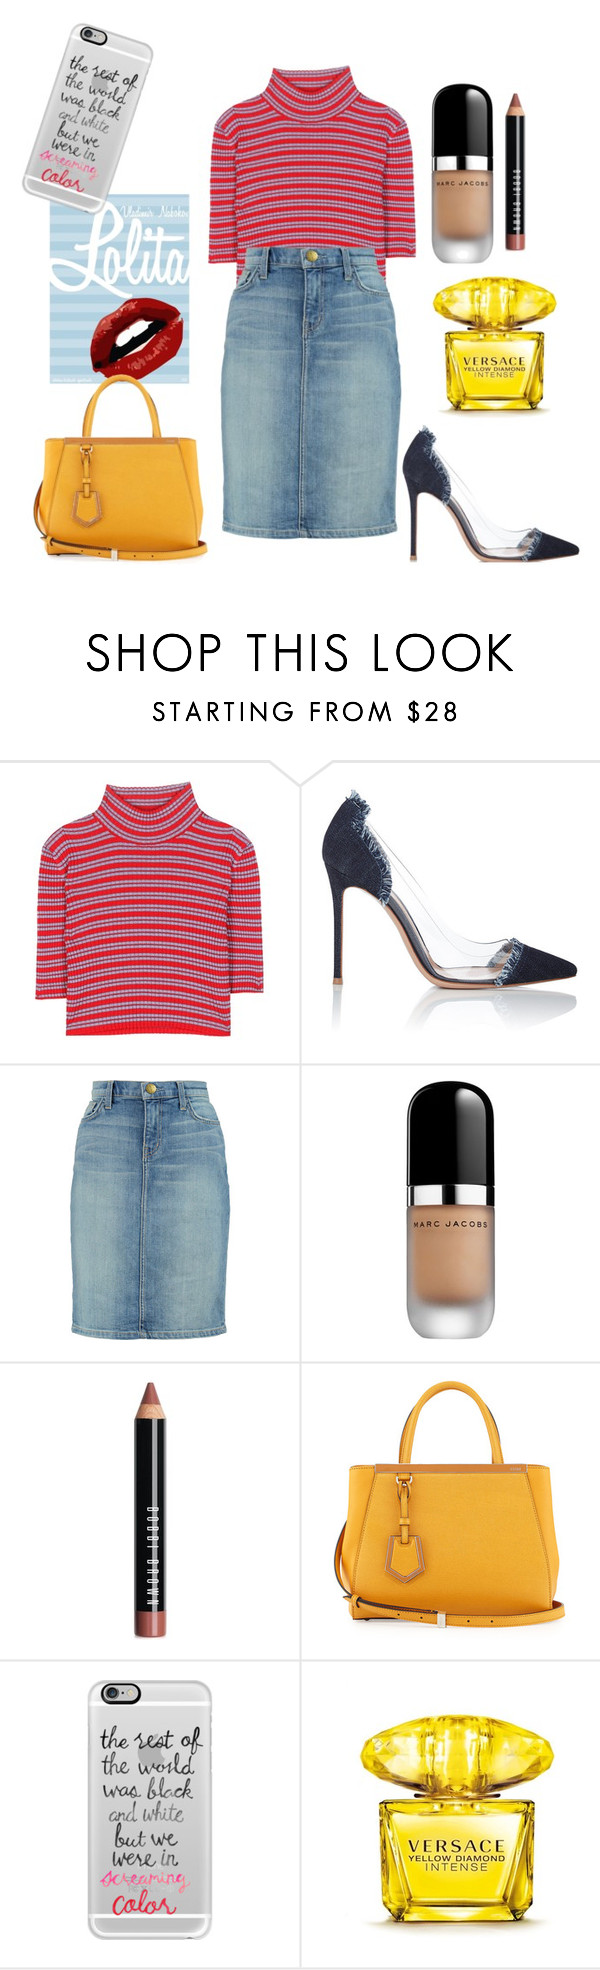 """""""prefer colors"""" by marija-colic7 ❤ liked on Polyvore featuring Alessandra Rich, Gianvito Rossi, Current/Elliott, Marc Jacobs, Bobbi Brown Cosmetics, Fendi, Casetify and Versace"""